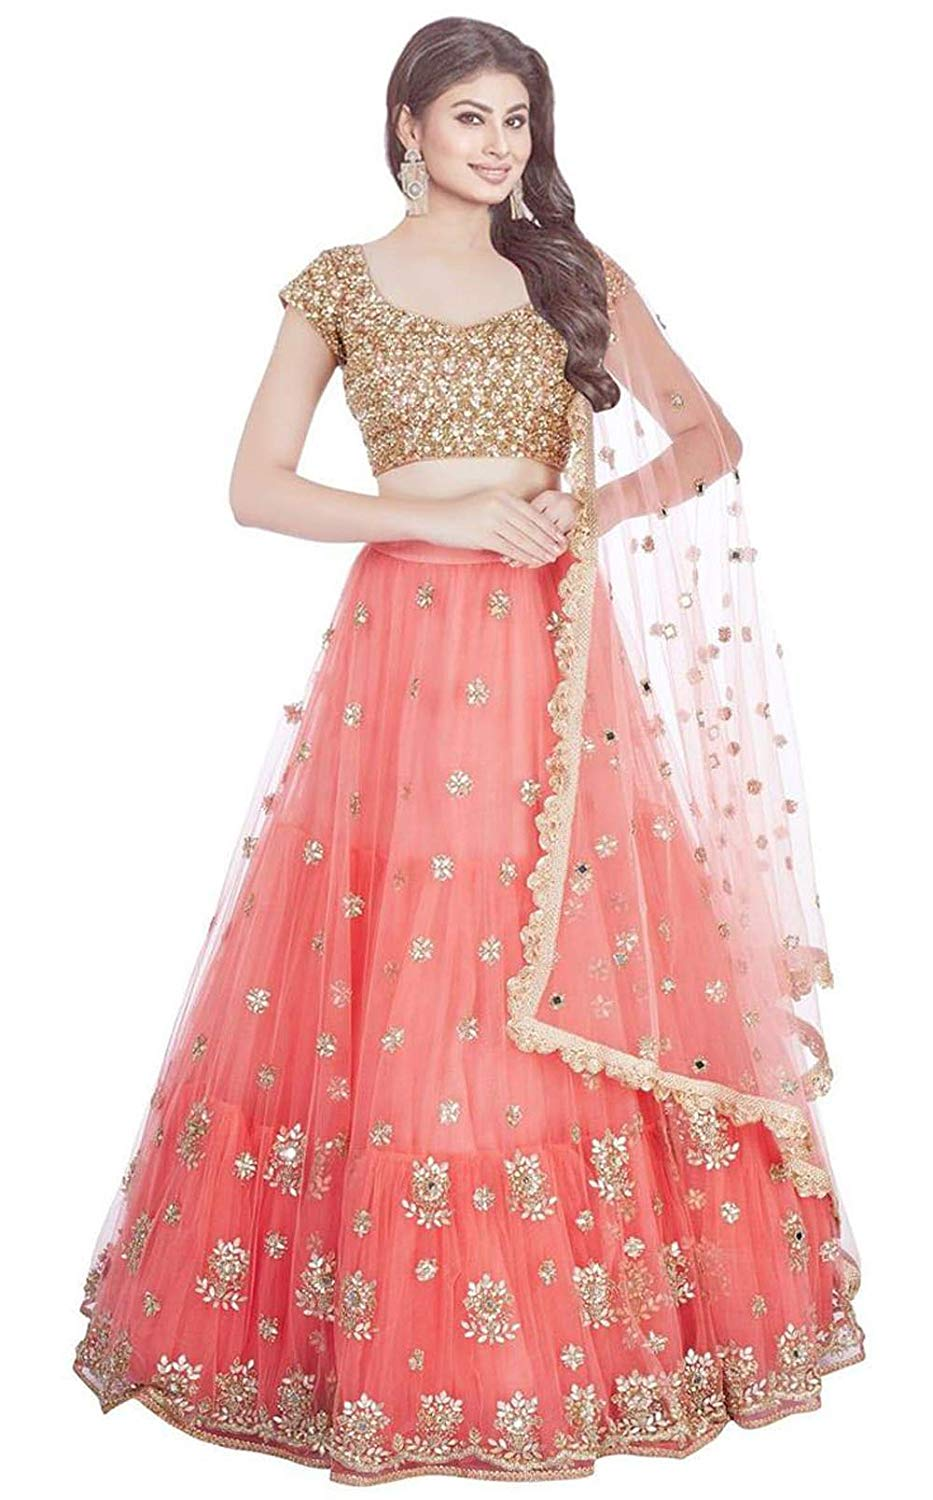 Women Ethnic Wear at Rs.250 only